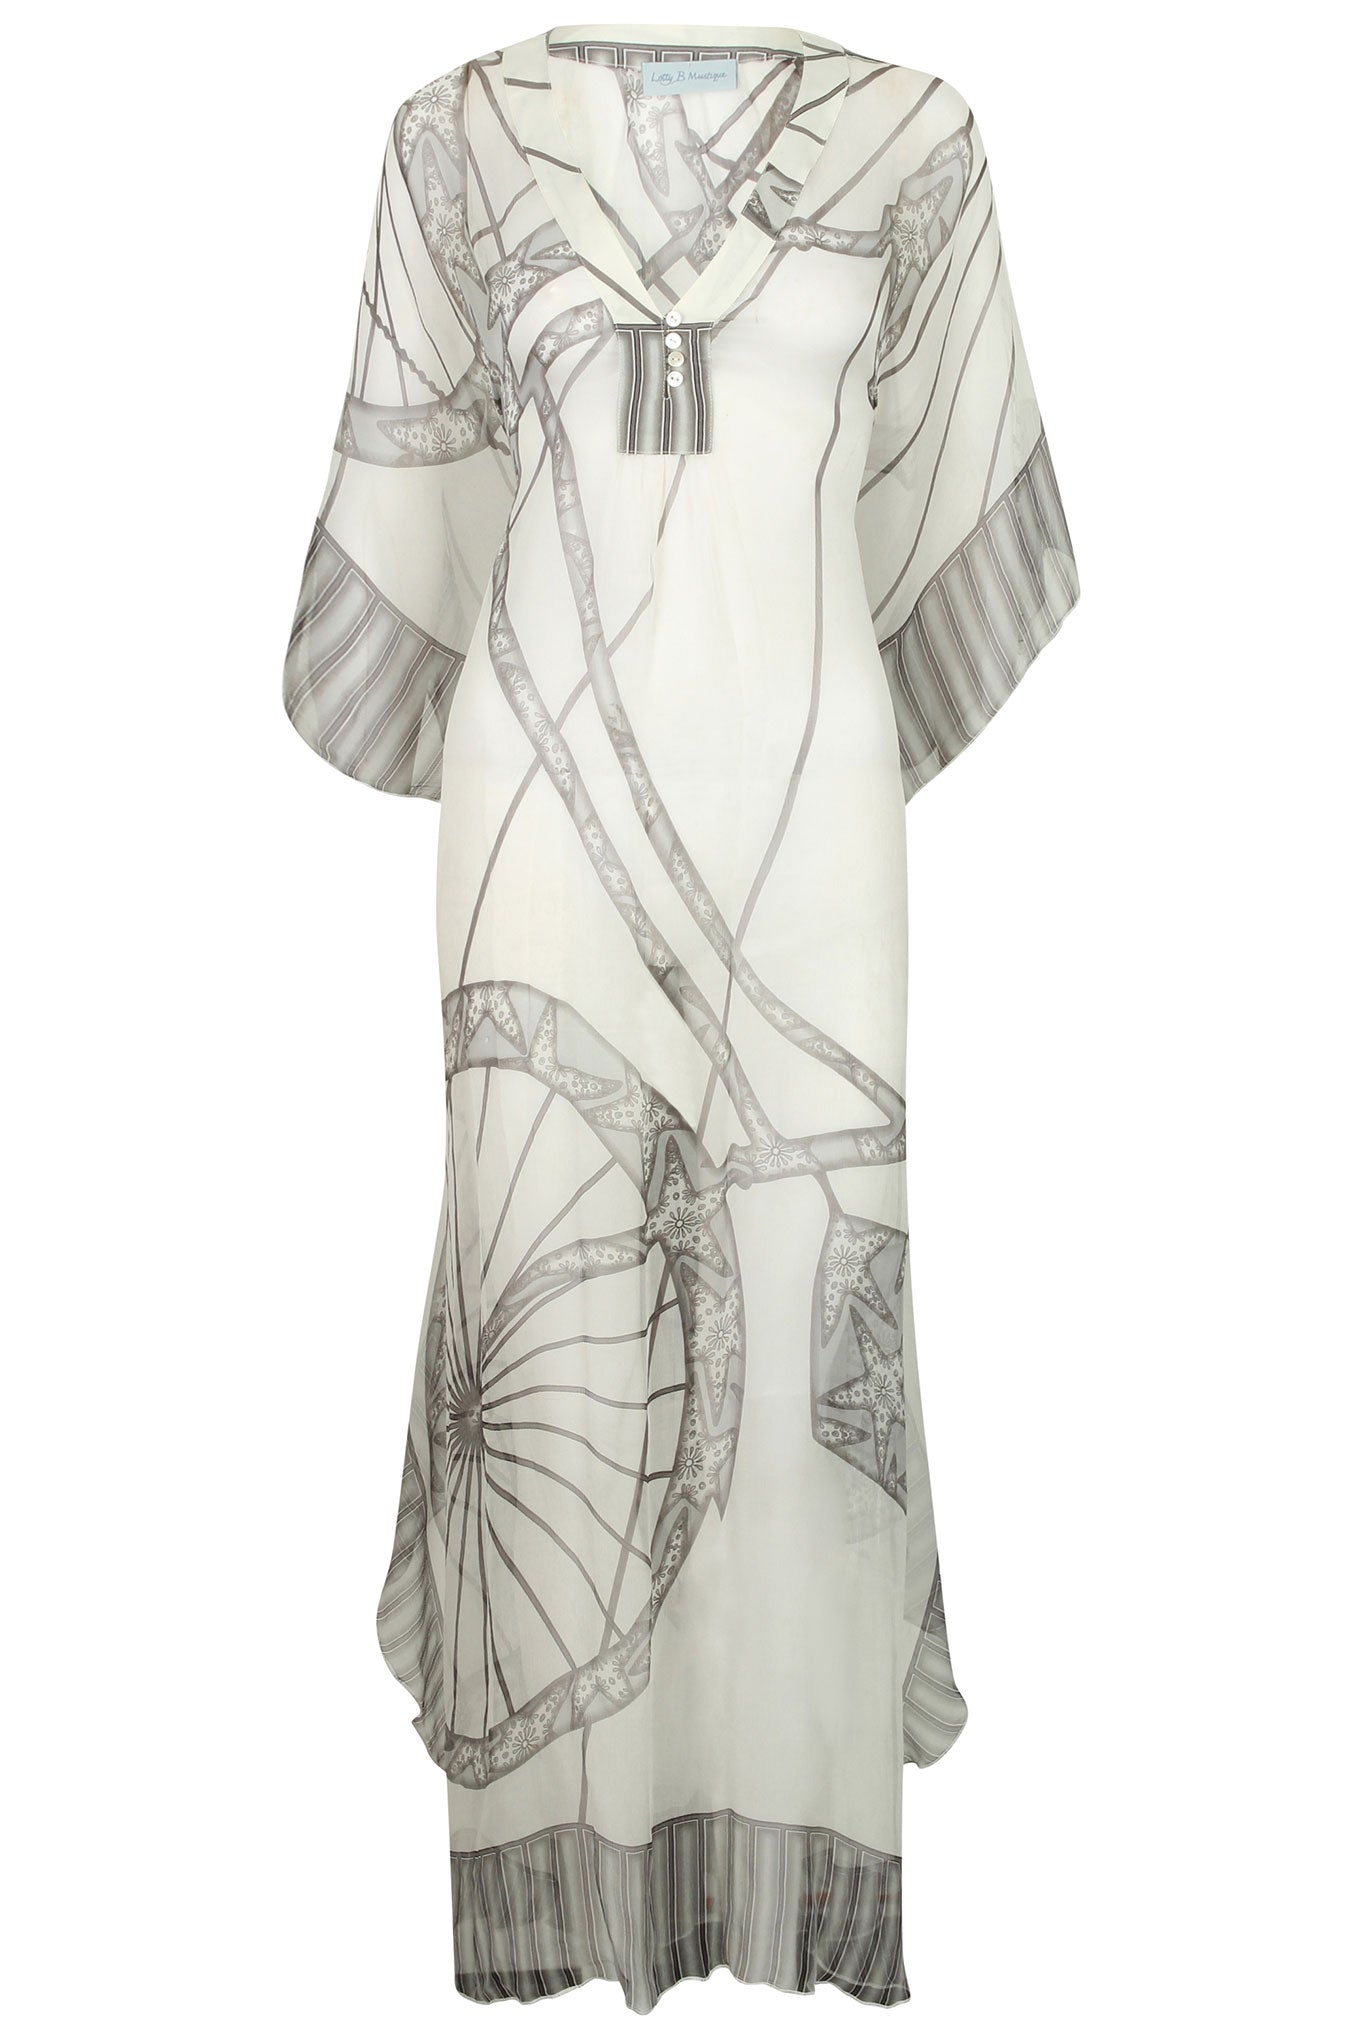 Lotty B Long Kaftan in Chiffon: BICYCLE - BLACK & WHITE